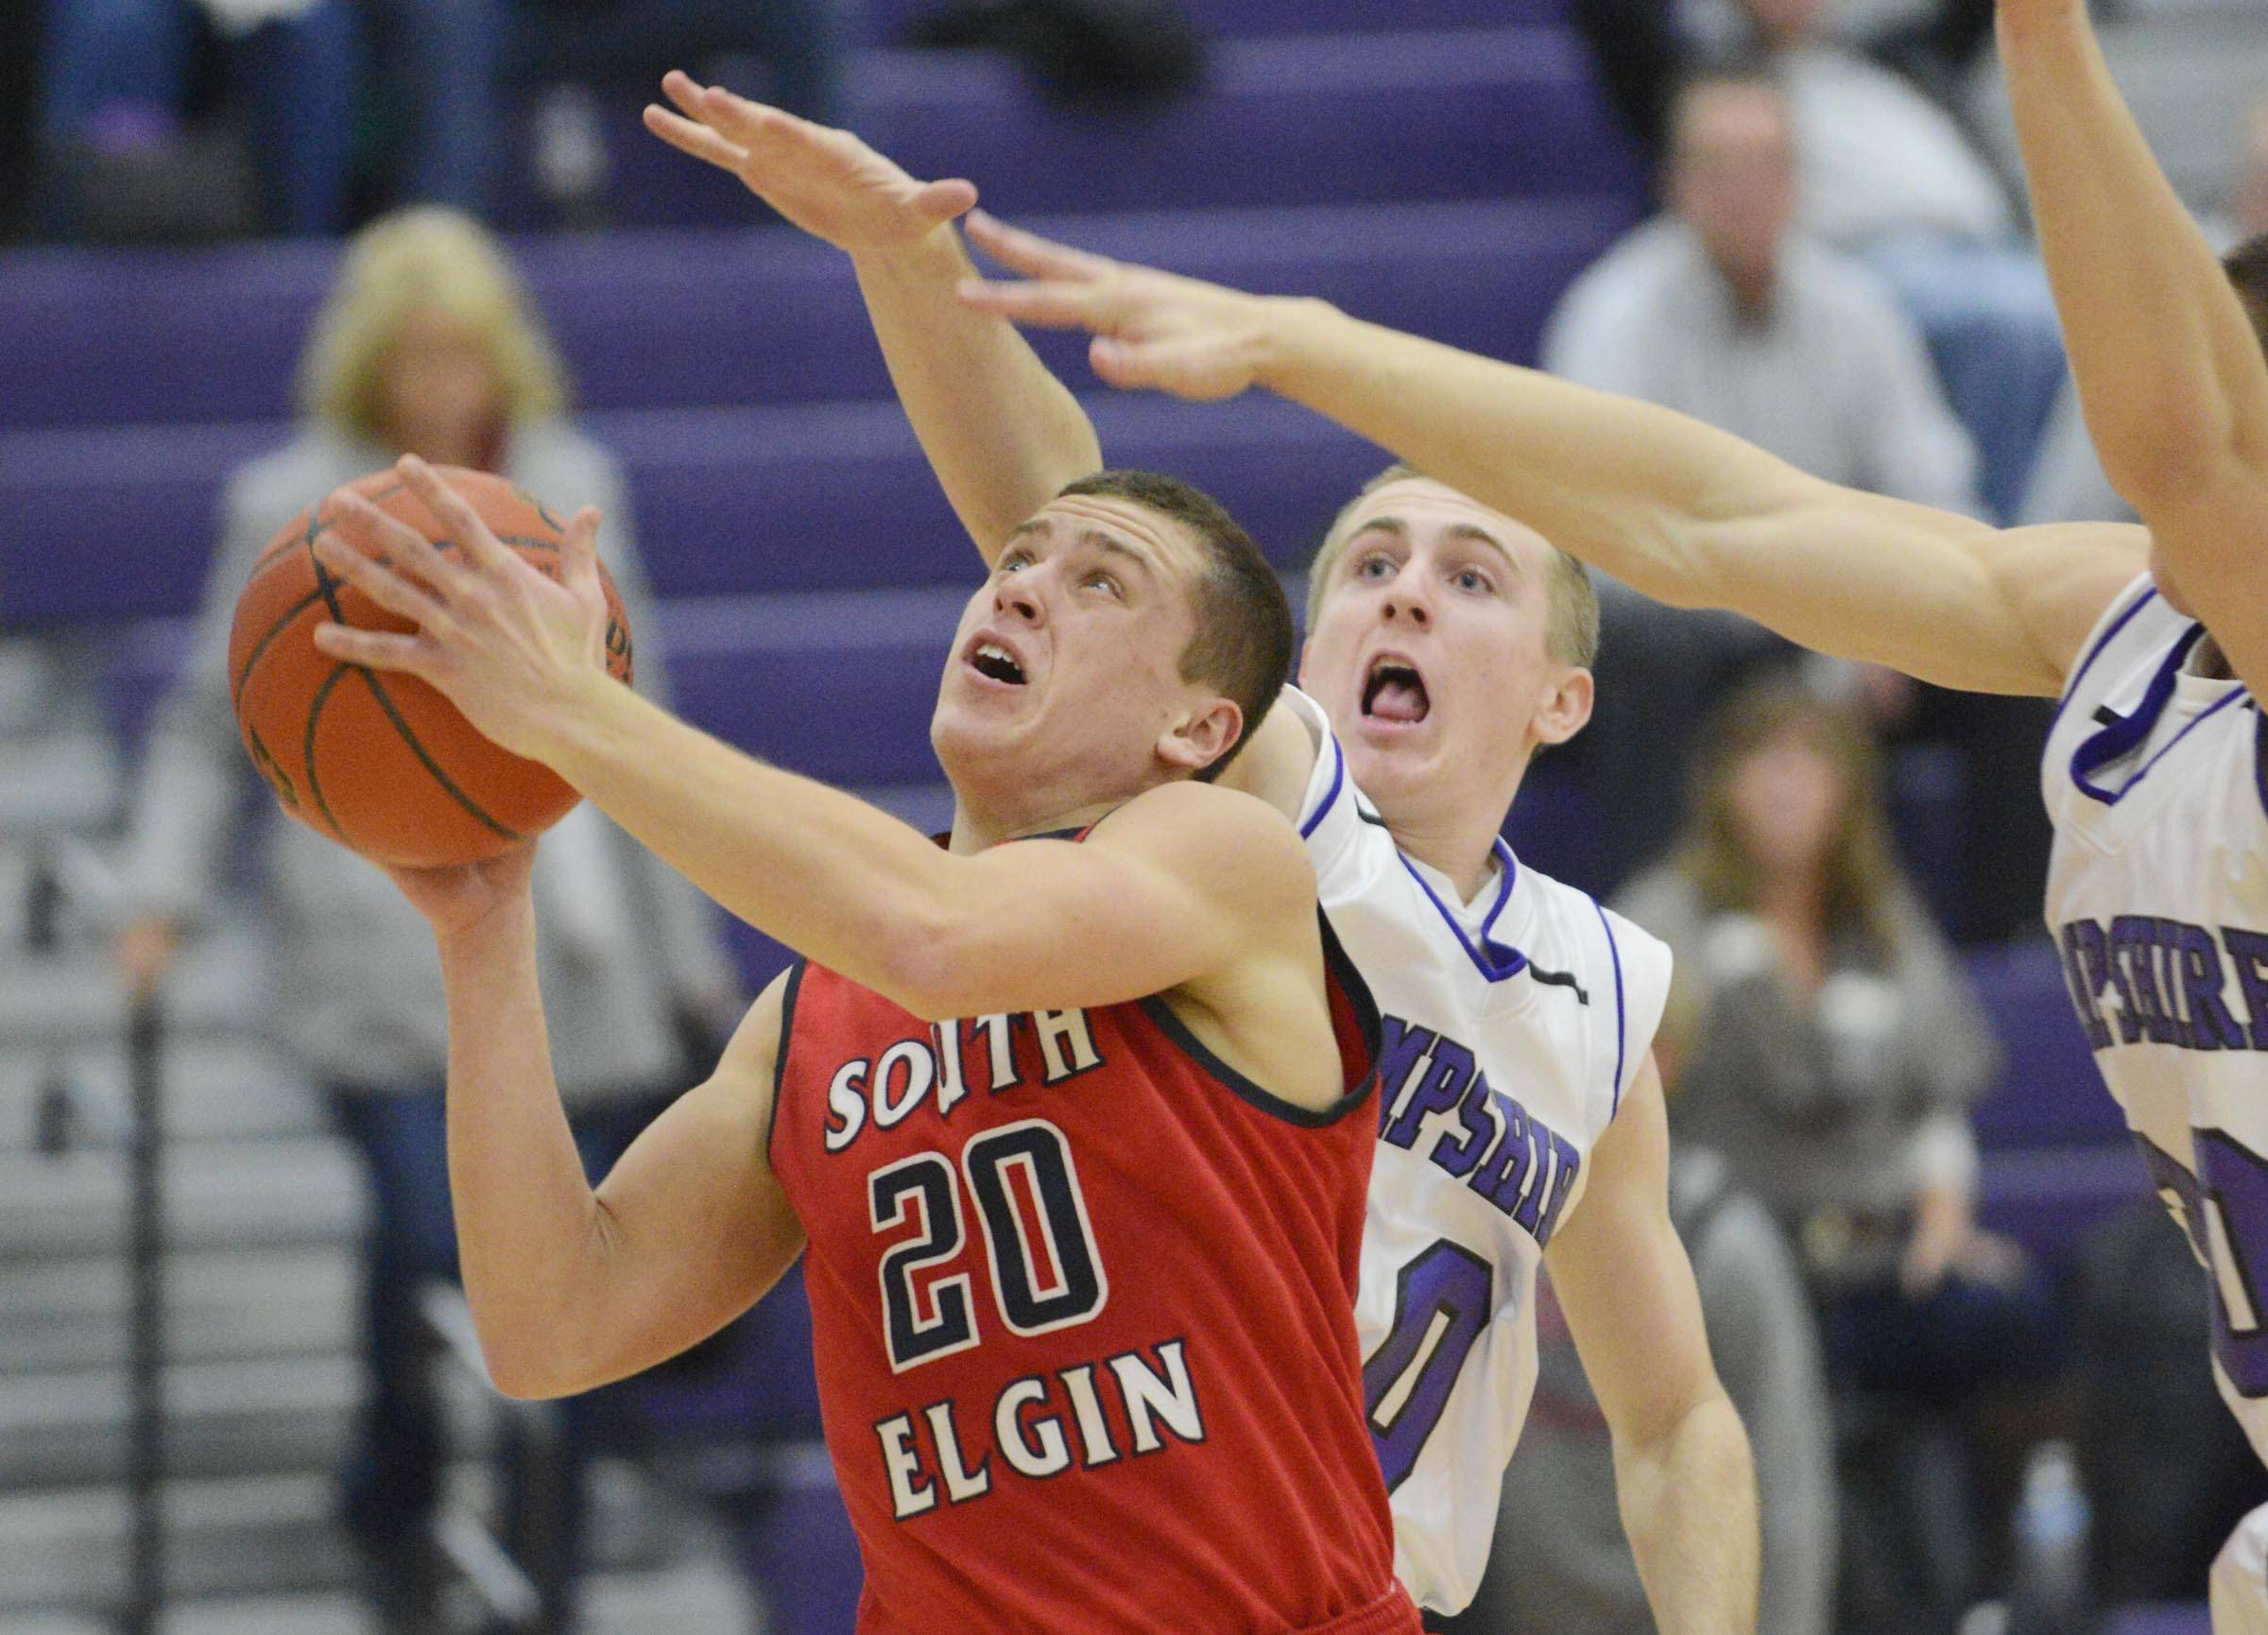 South Elgin's Matt McClure cuts through the defense of Hampshire's Drew Doran and Austin Spaeth Wednesday in Hampshire.